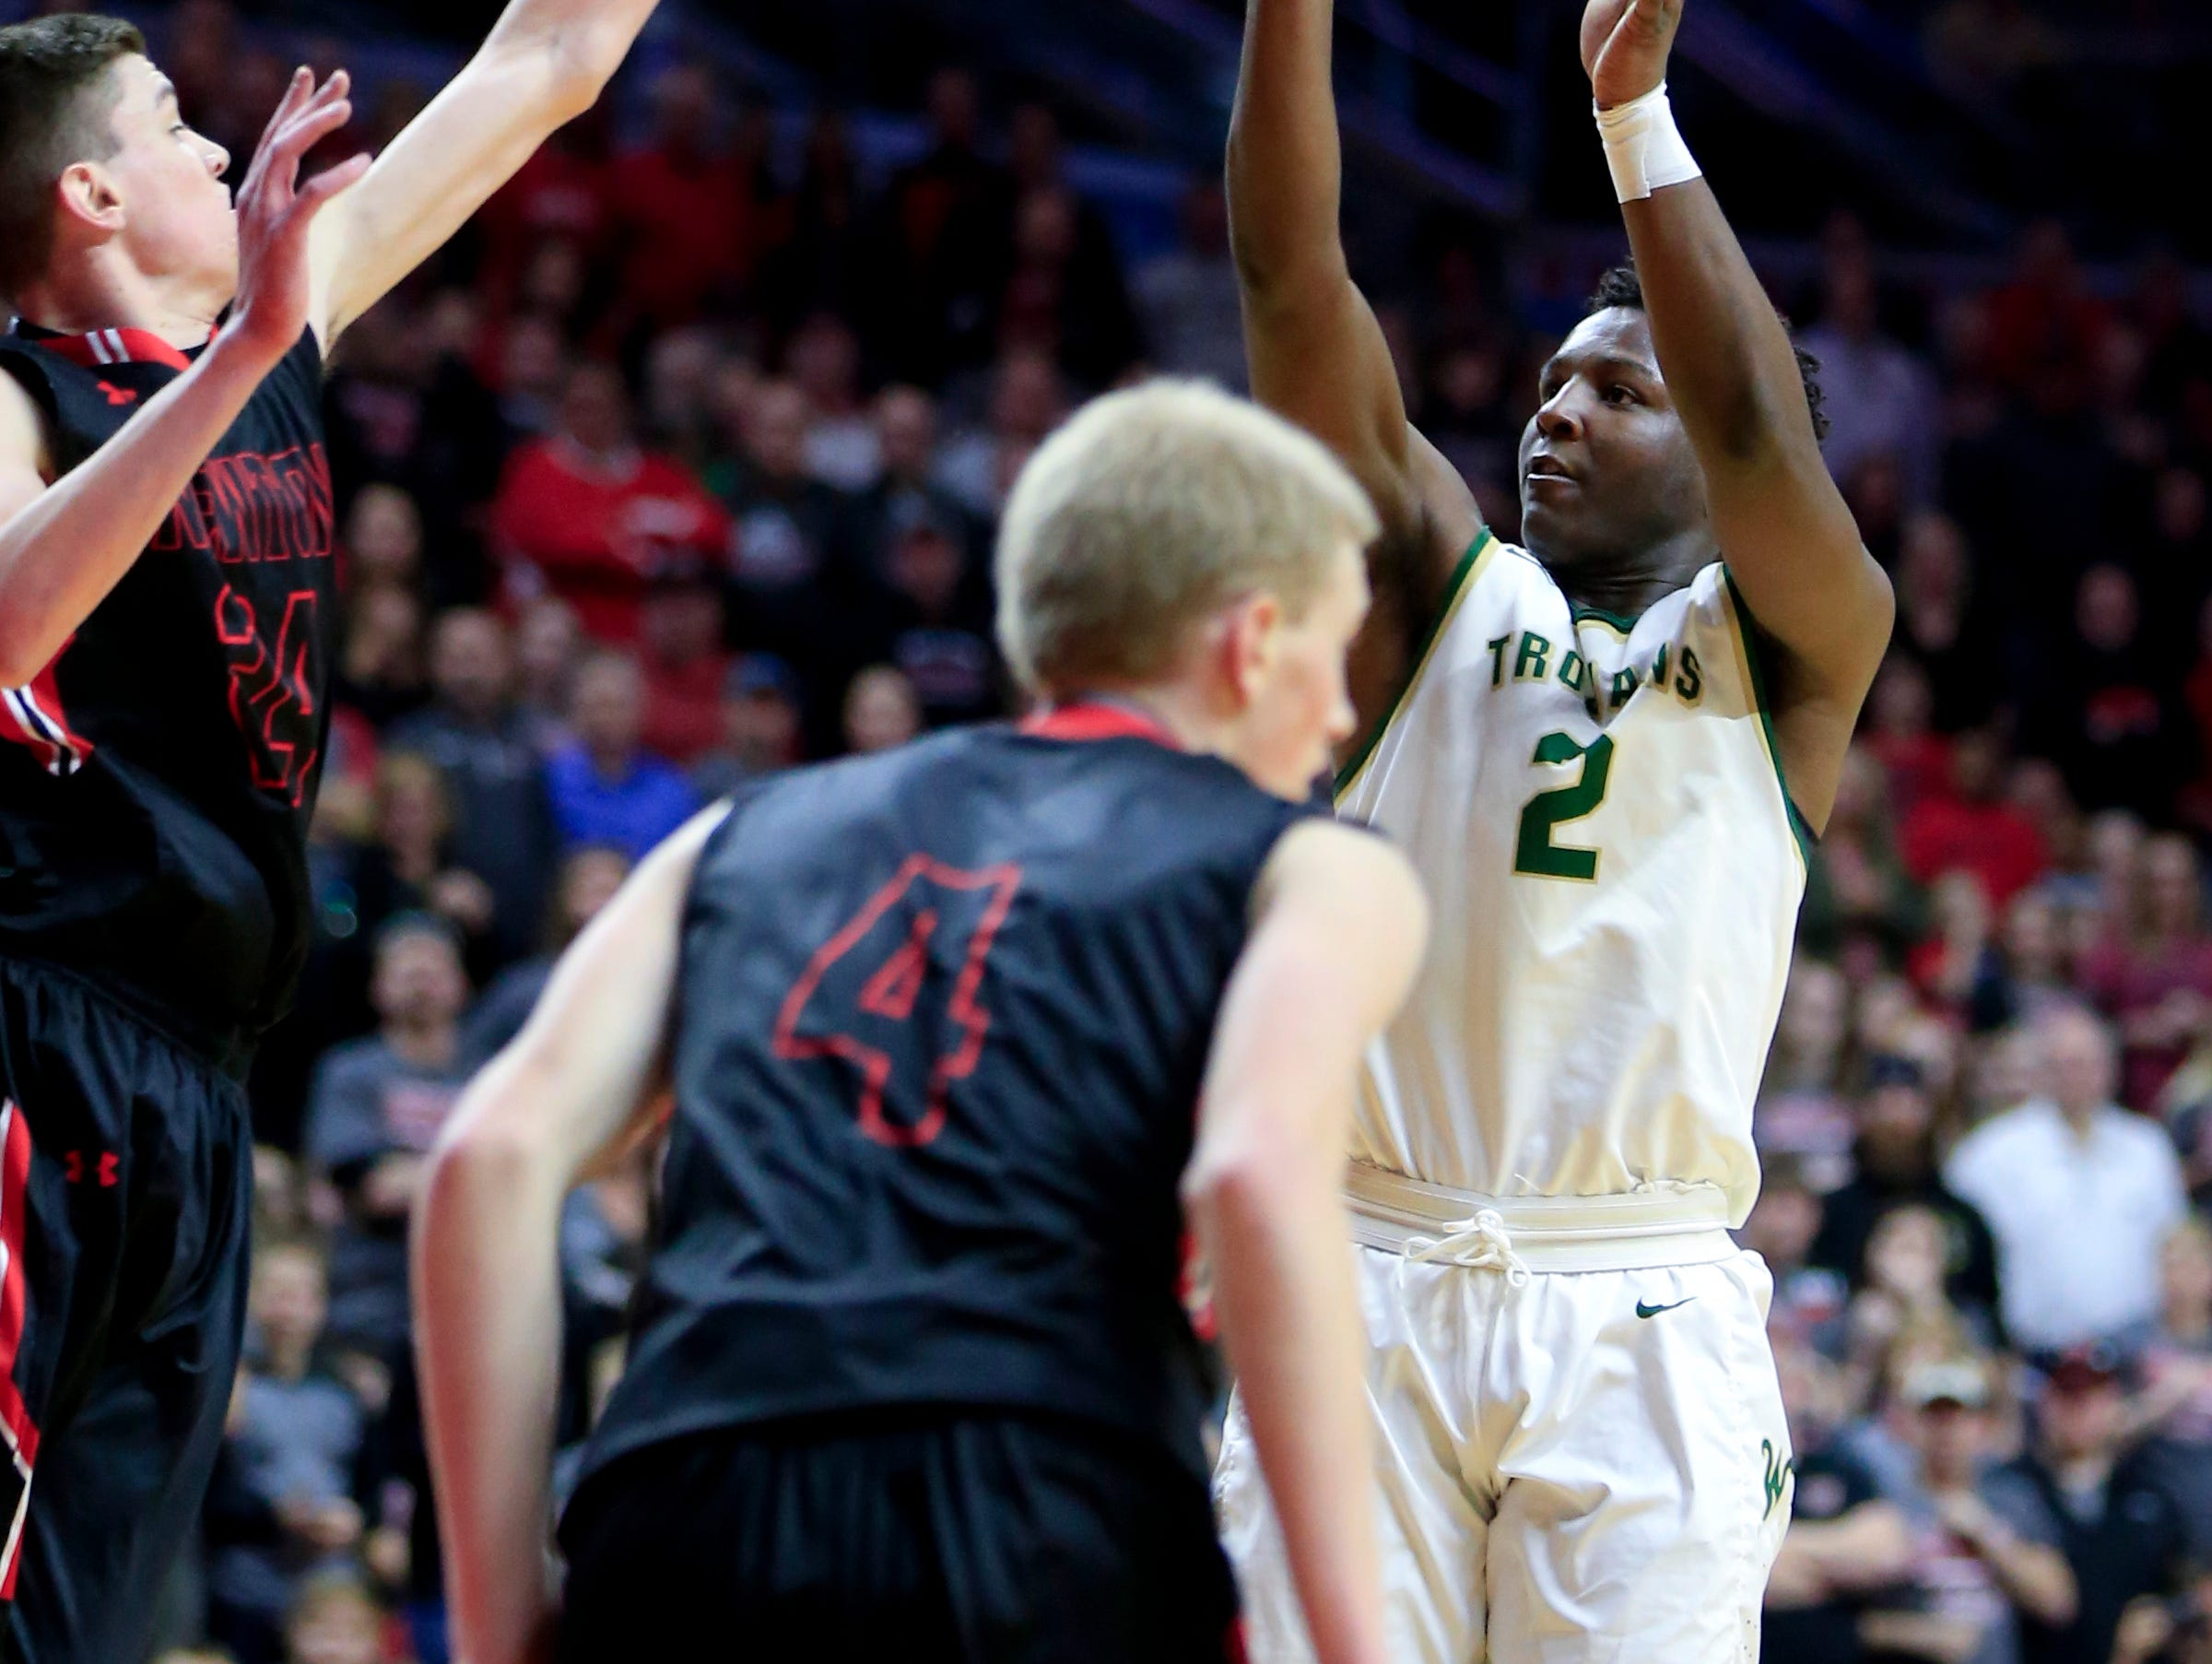 Devontae Lane of Iowa City West puts up a shot during the 4A quarter finals against Newton Wednesday, March 8, 2017.